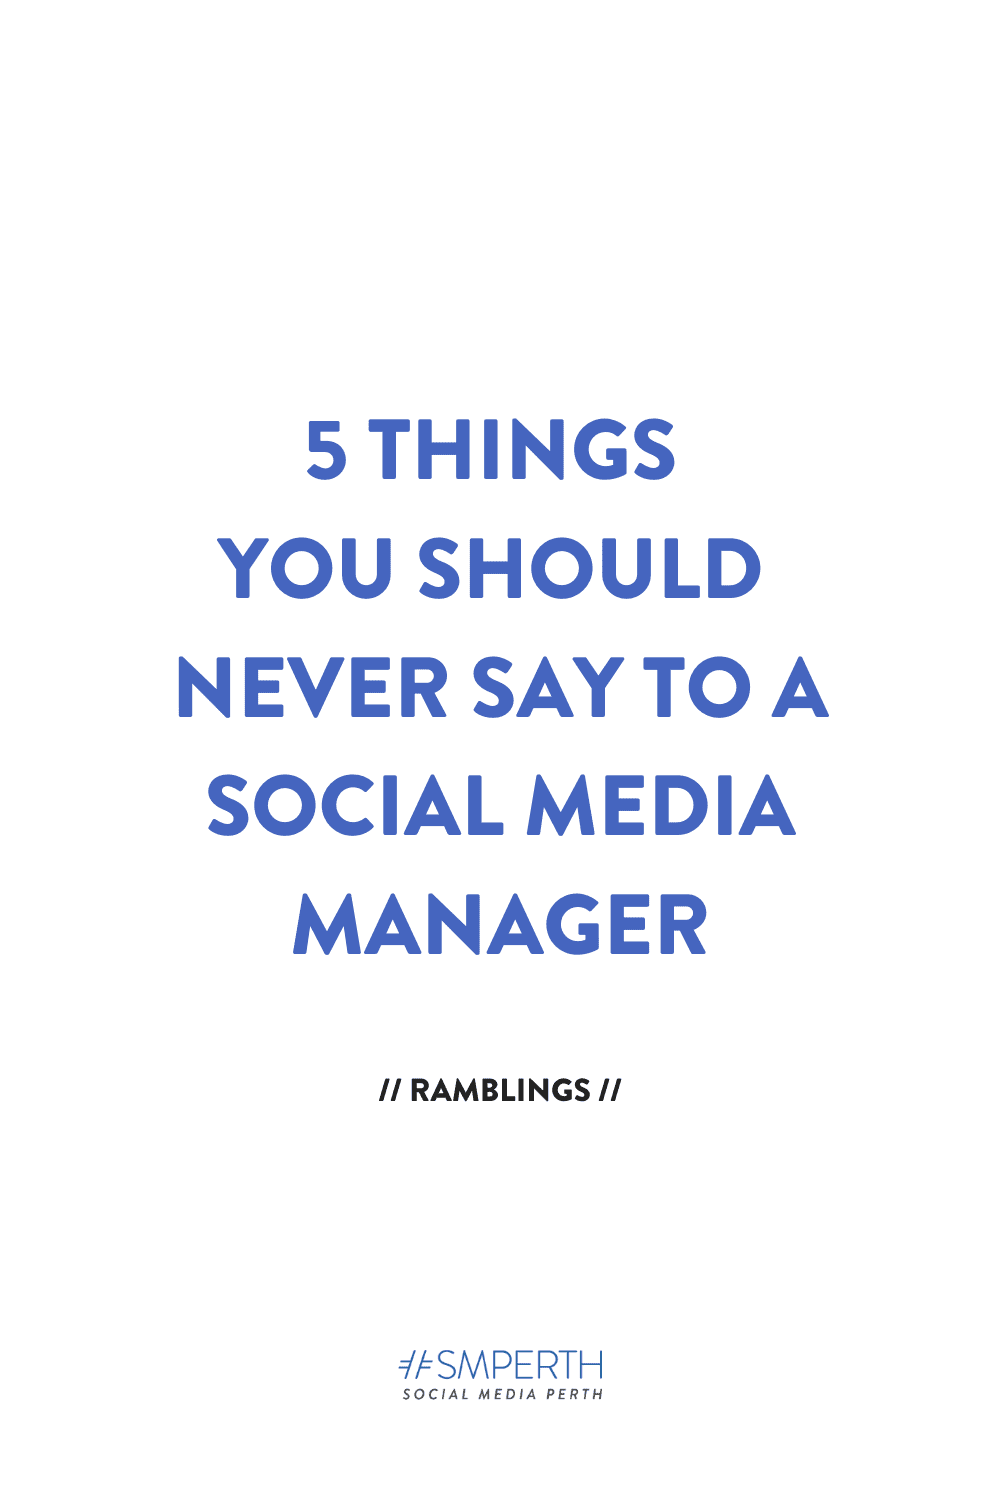 5 Things You Should Never Say to a Social Media Manager Pt 2 [VIDEO]